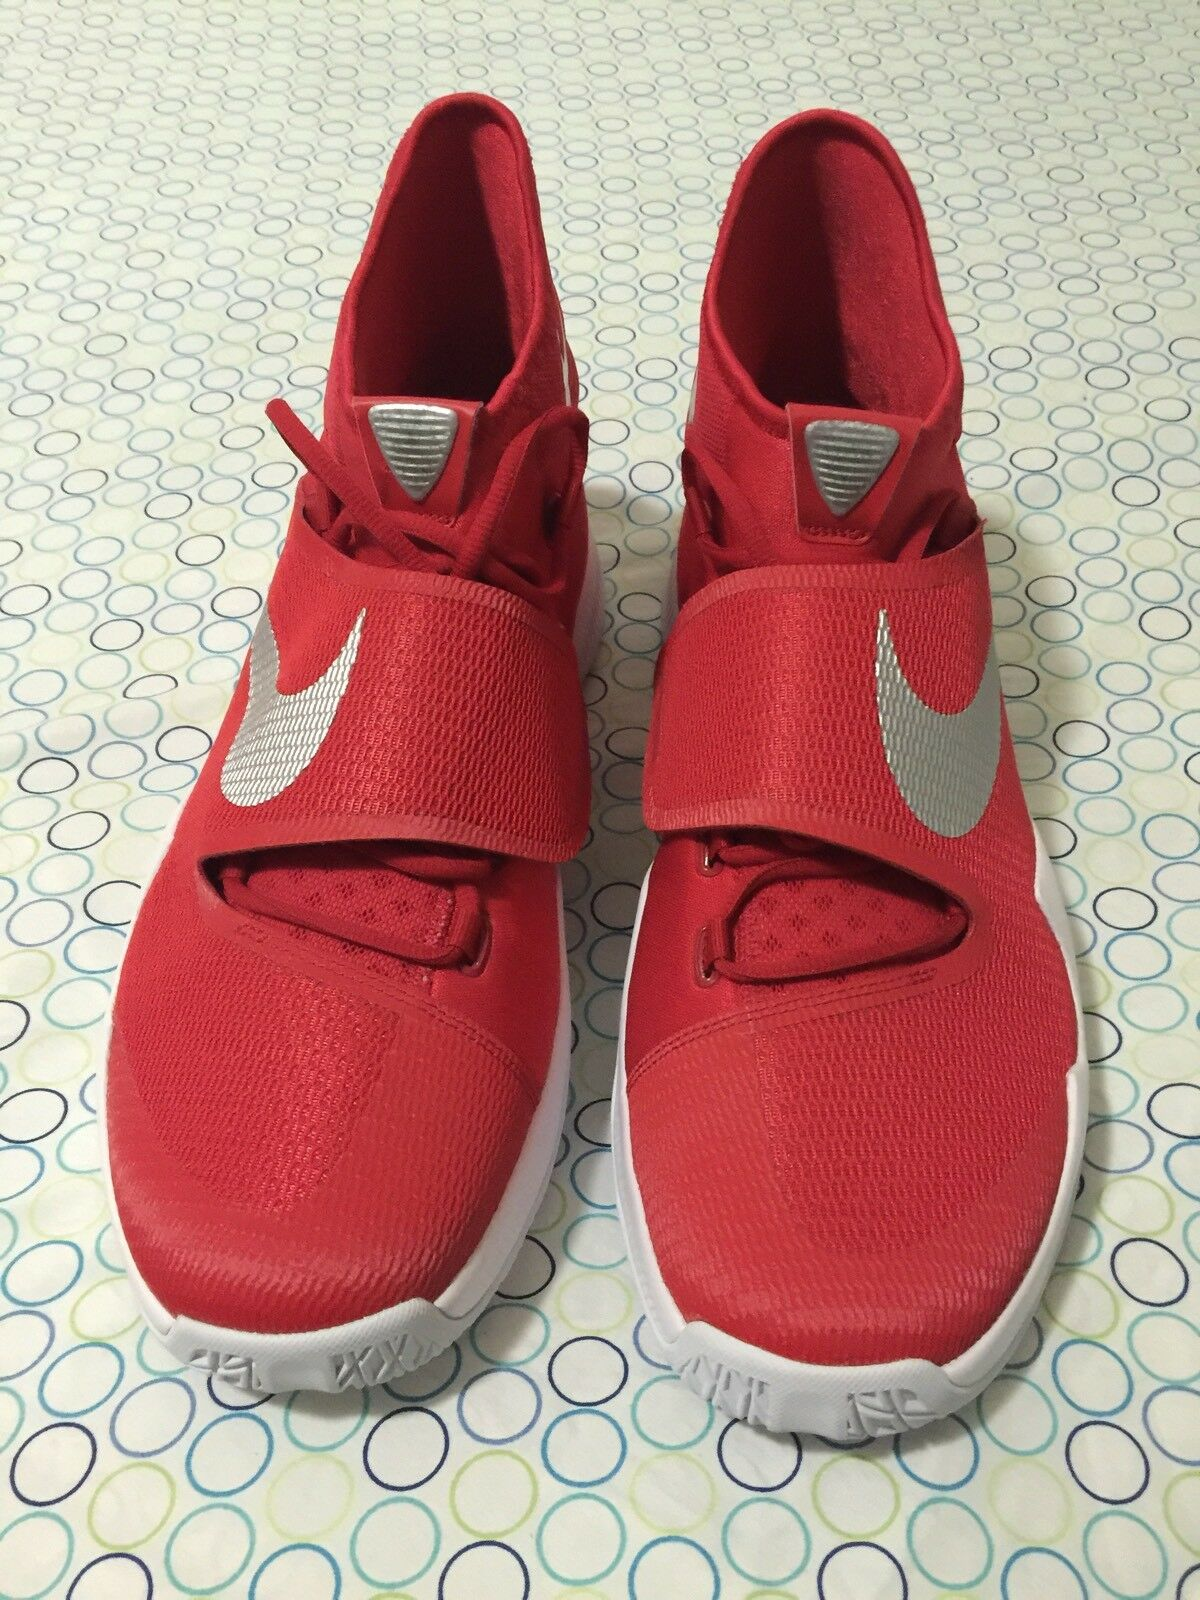 NIKE Zoom Hyperrev TB Red Men's Basketball Shoes New No Box 835439 603 - Sz 16.5